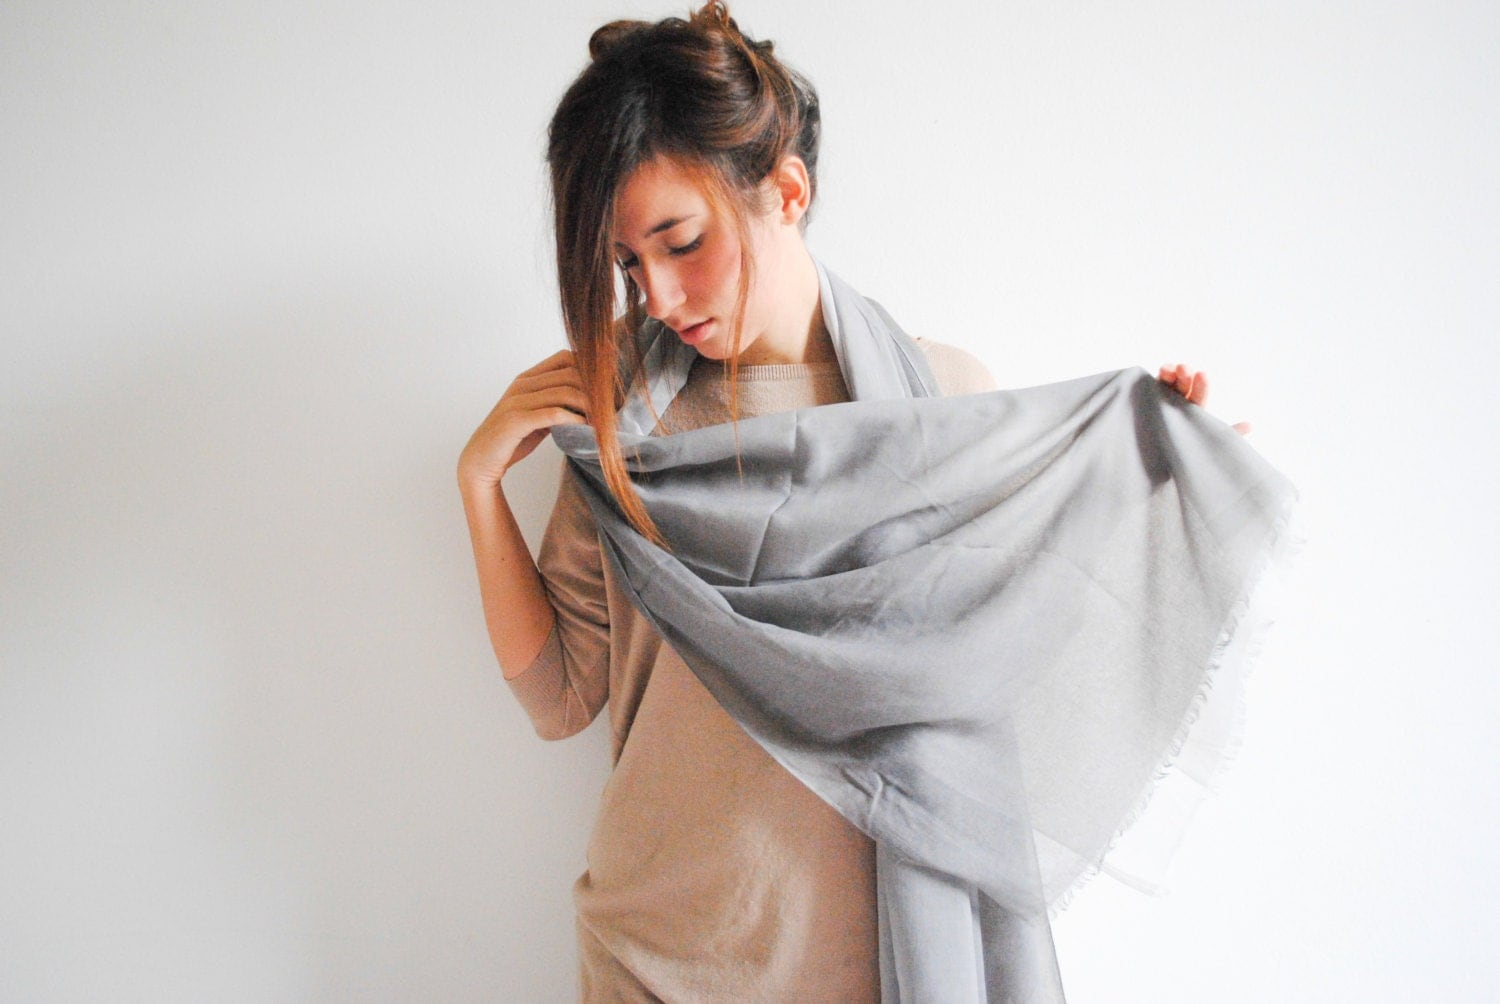 Gray Cotton Scarf - Women's Fashion Accessories - Women Scarves - Fall women scarf - Long Neck Scarf - NadjasMovingCastle